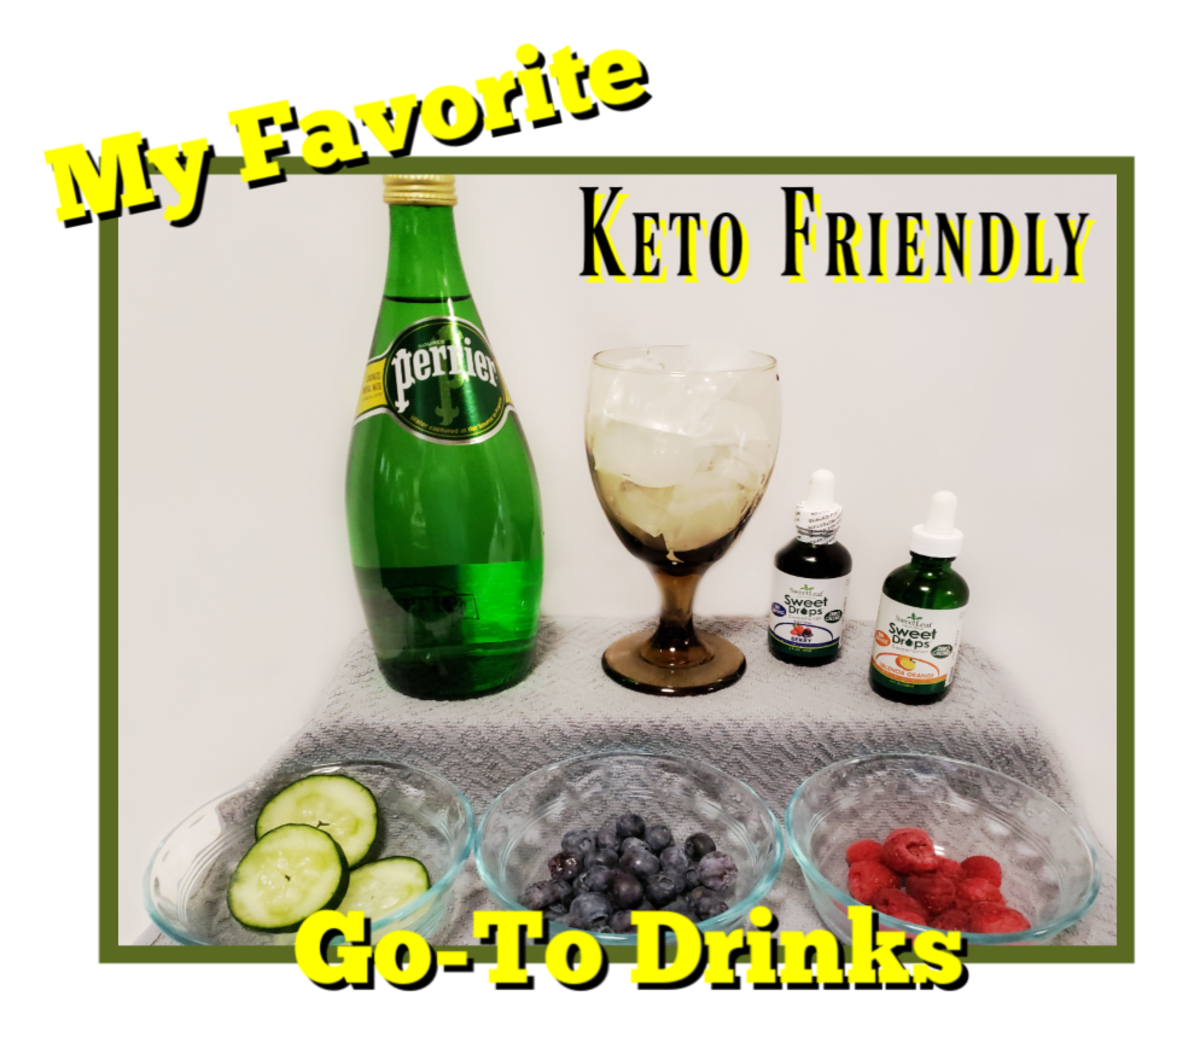 My Favorite Keto Go-To Drinks